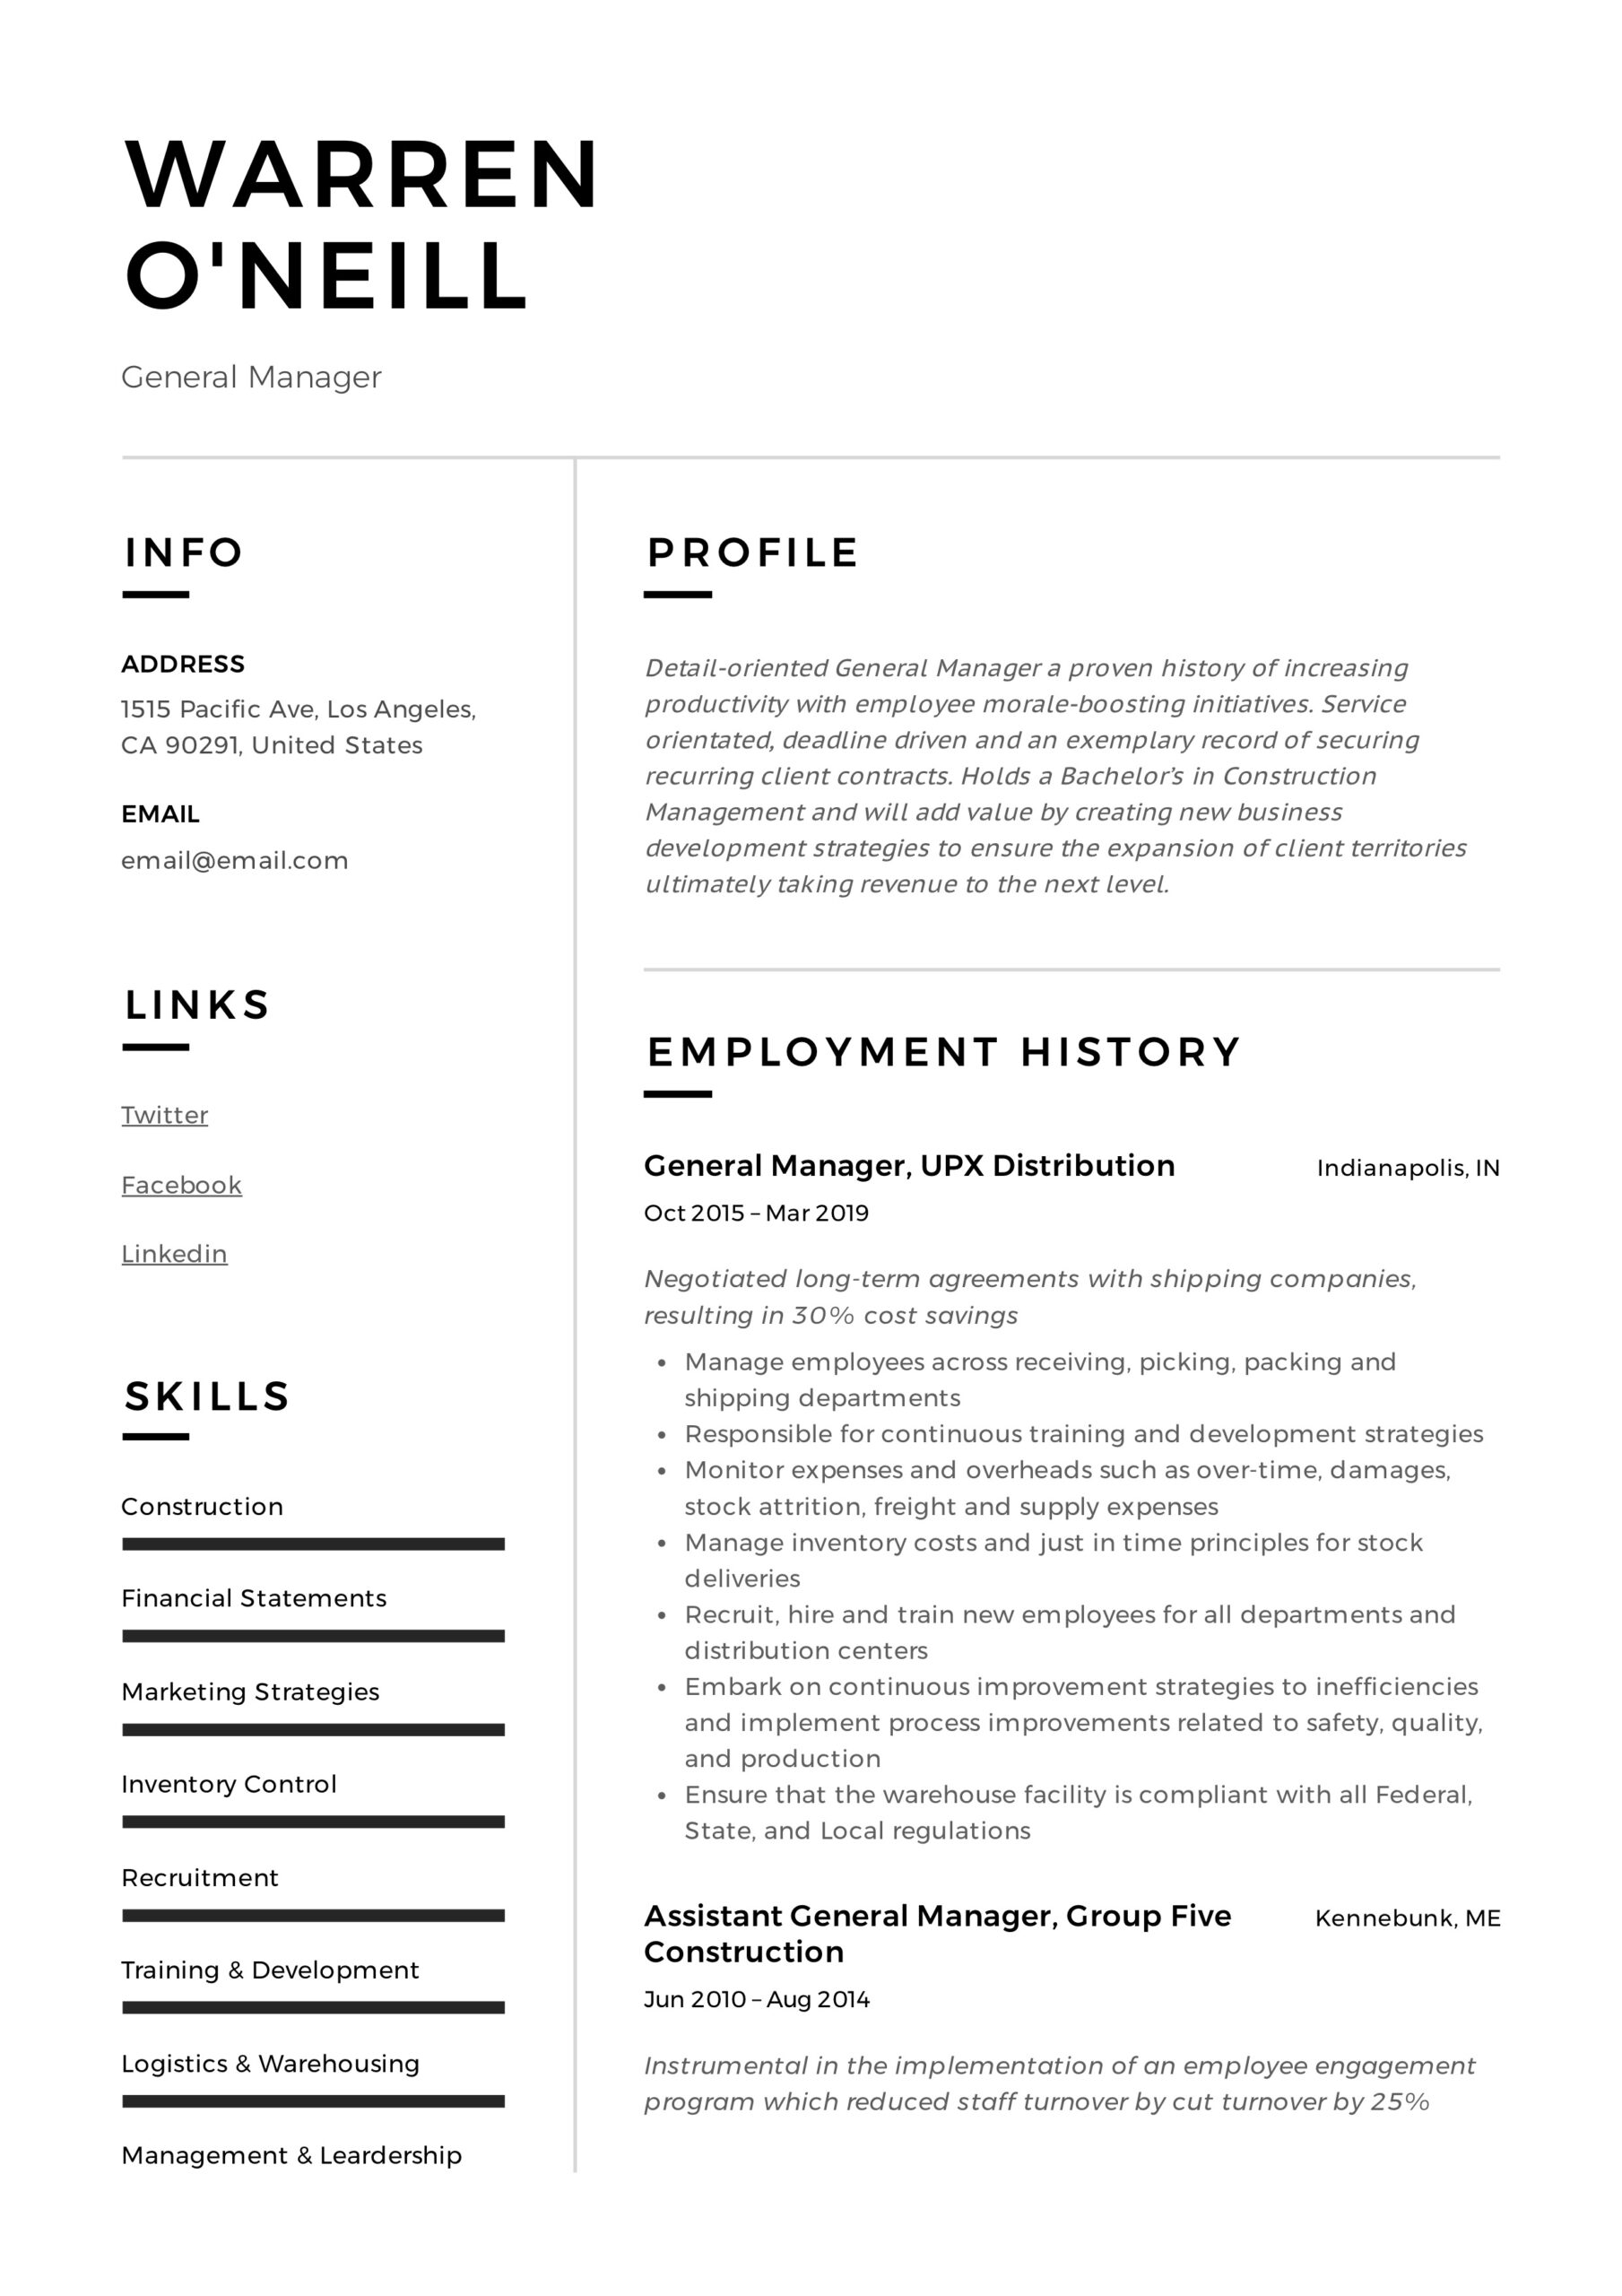 general manager resume writing guide examples pdf hotel word format neill inspiration Resume Hotel Manager Resume Word Format